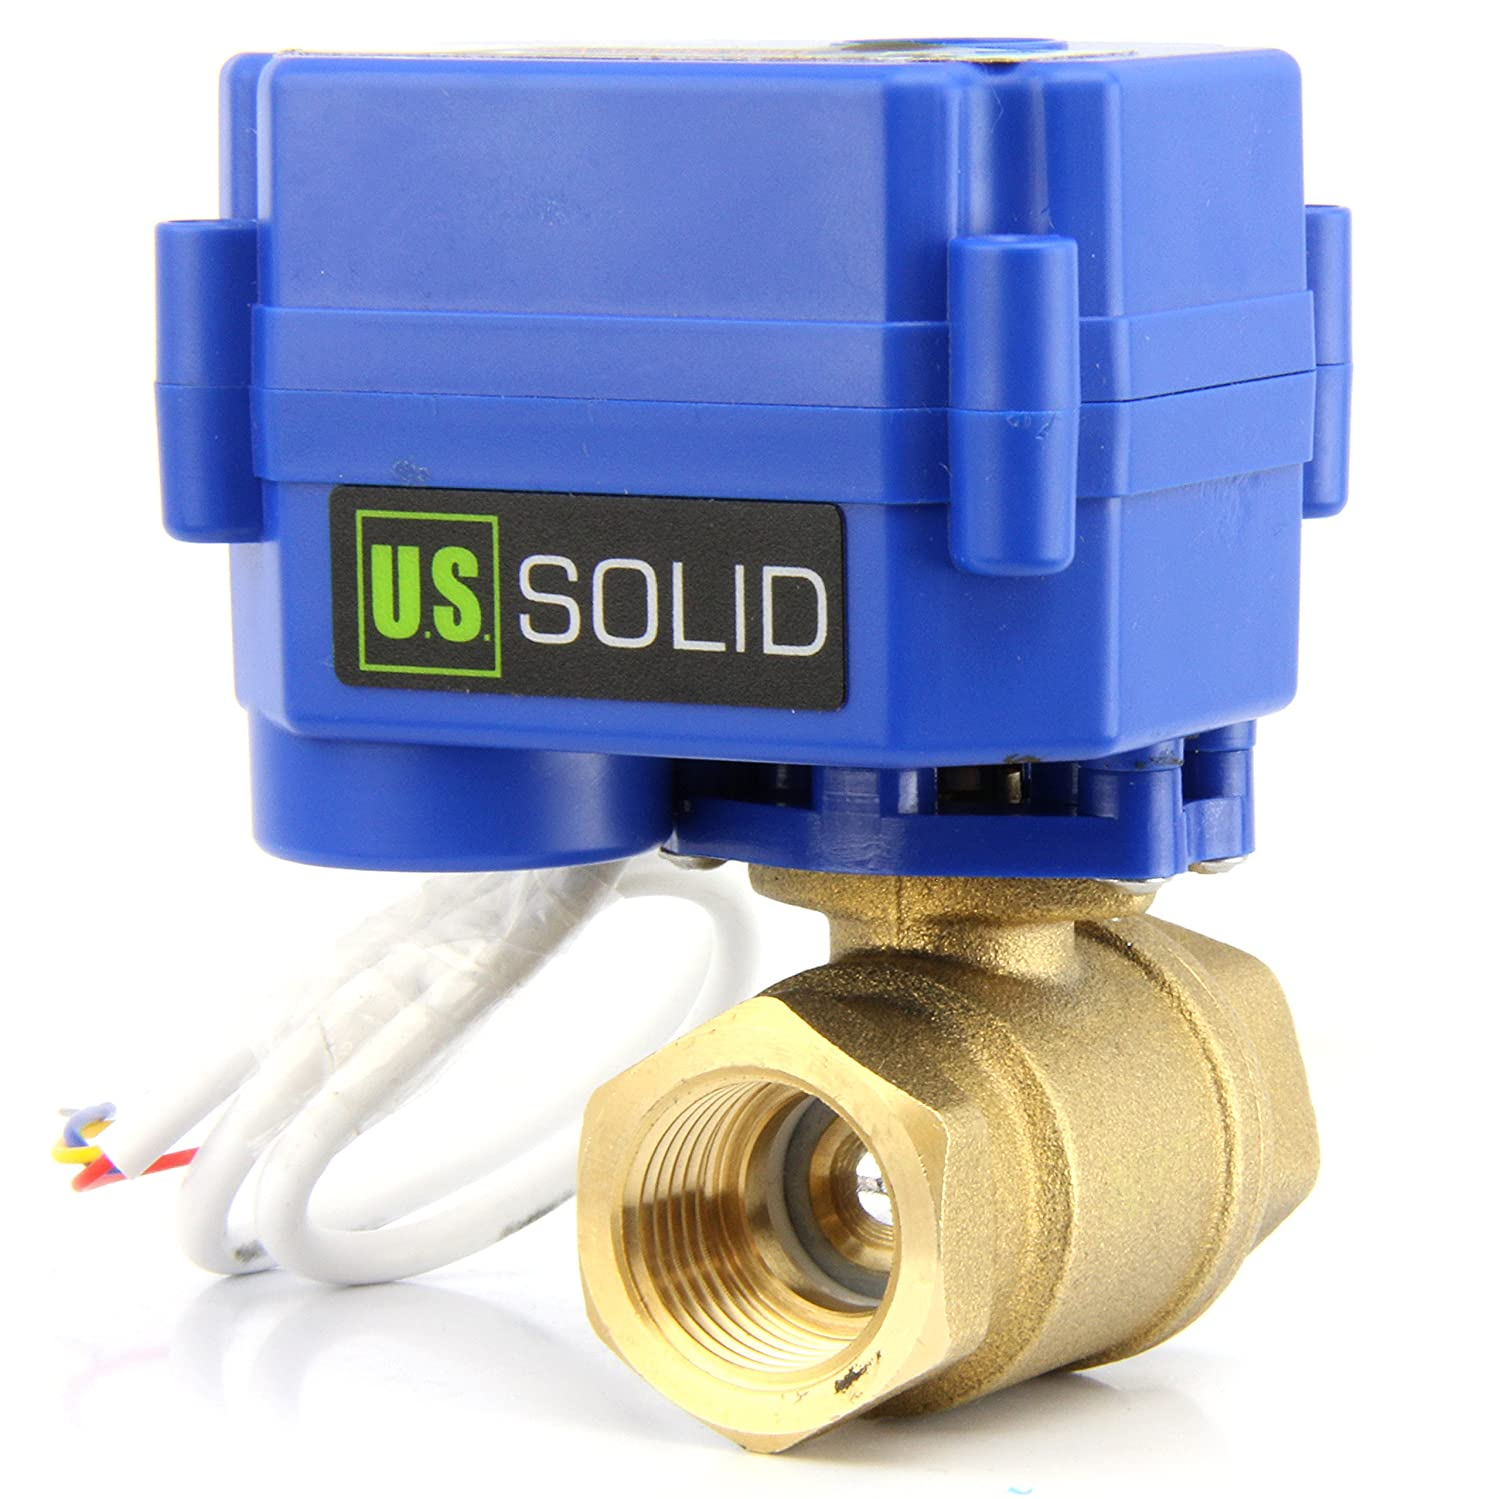 """Amazon.com: Motorized Ball Valve- 1/2"""" Brass Electrical Ball Valve with  Full Port, 9-24V AC/DC and 3 Wire Setup by U.S. Solid: Home Improvement"""